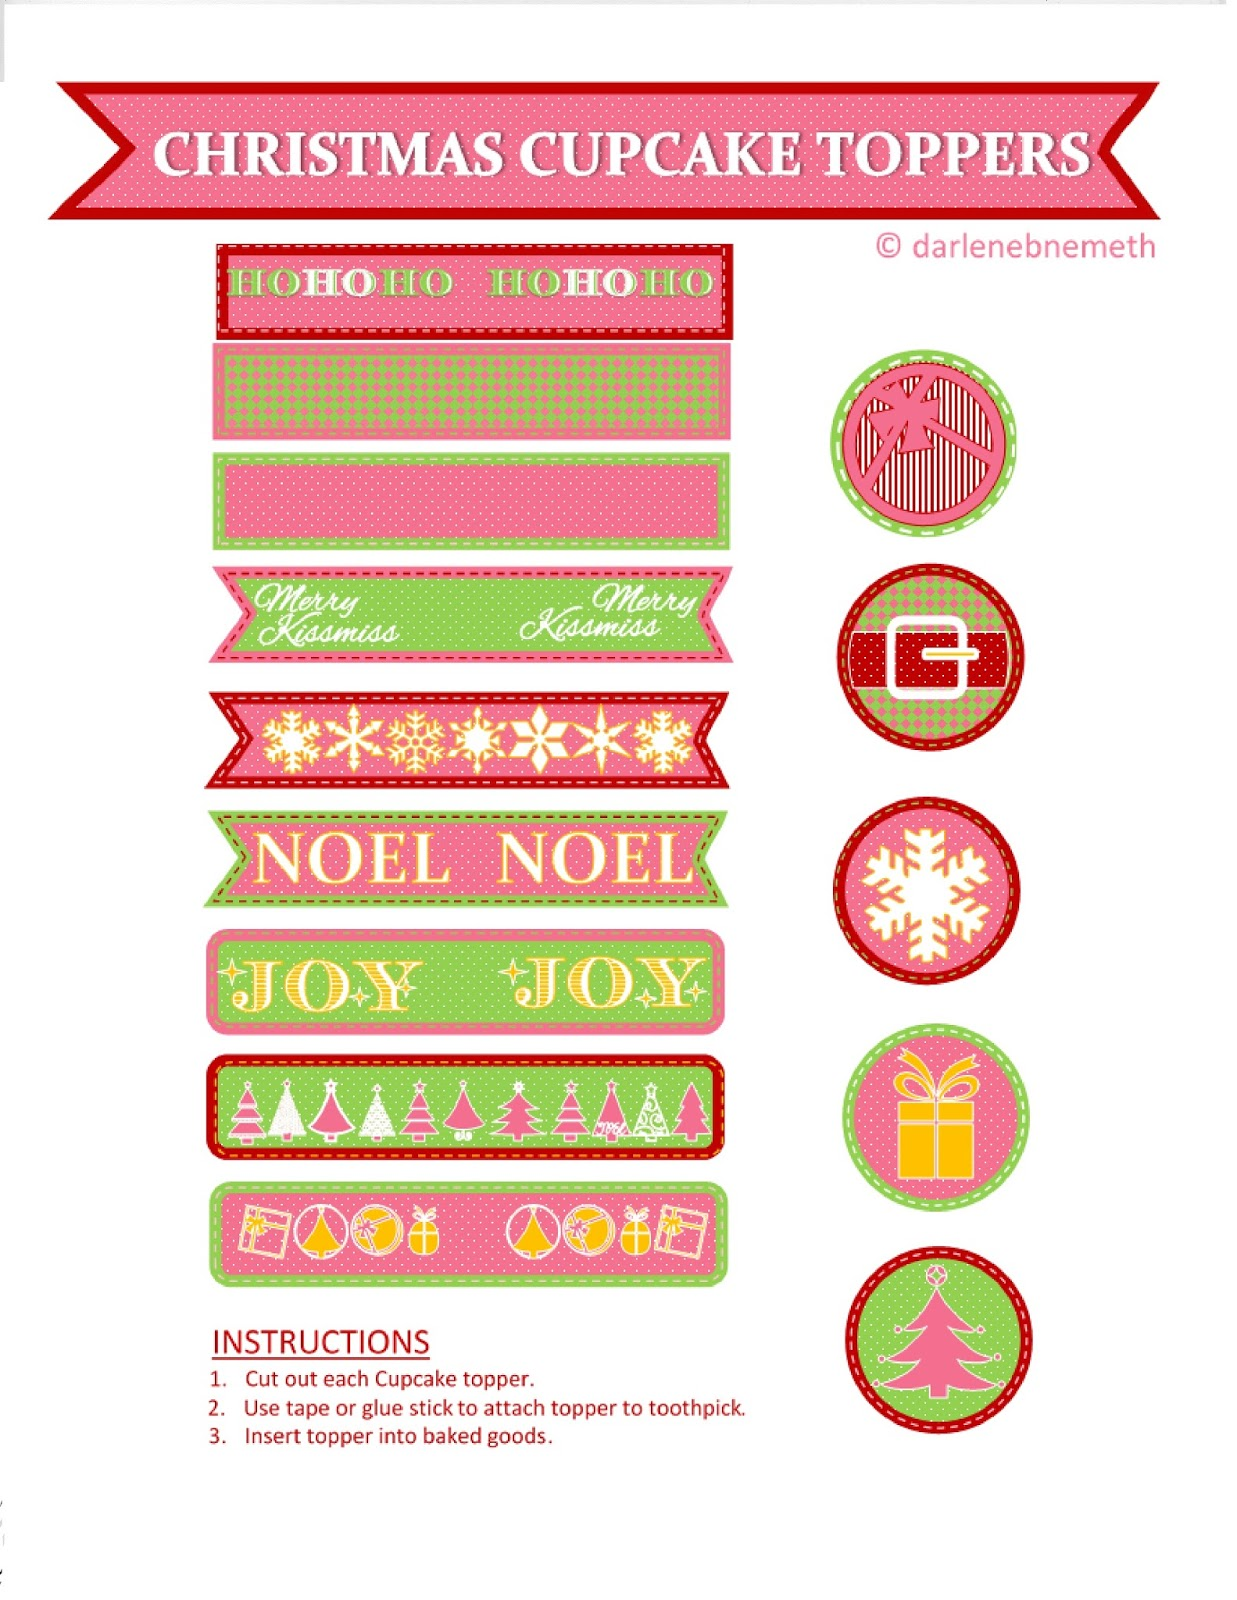 Christmas Cupcake Toppers Free Printable.Let It Shine Freebie Christmas Cupcake Toppers